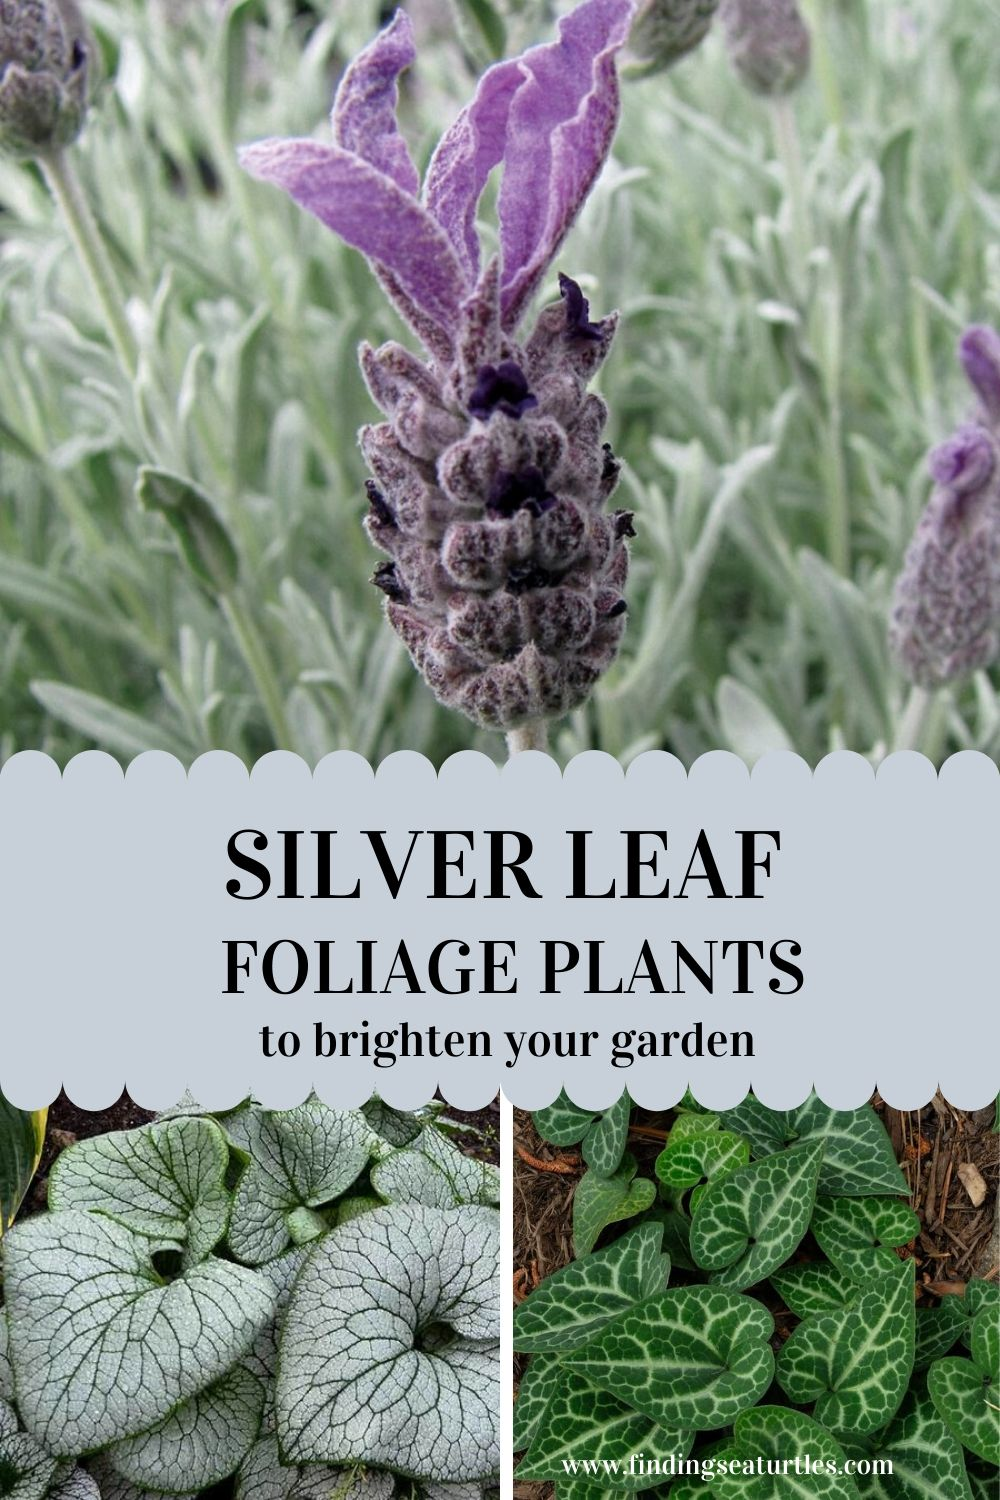 Silver Leaf Foliage Plants to brighten your garden #SilverFoliage #PlantswithSilverLeaves #DramaticFoliagePlants #Gardening #Landscapes #SilverLeafPlants